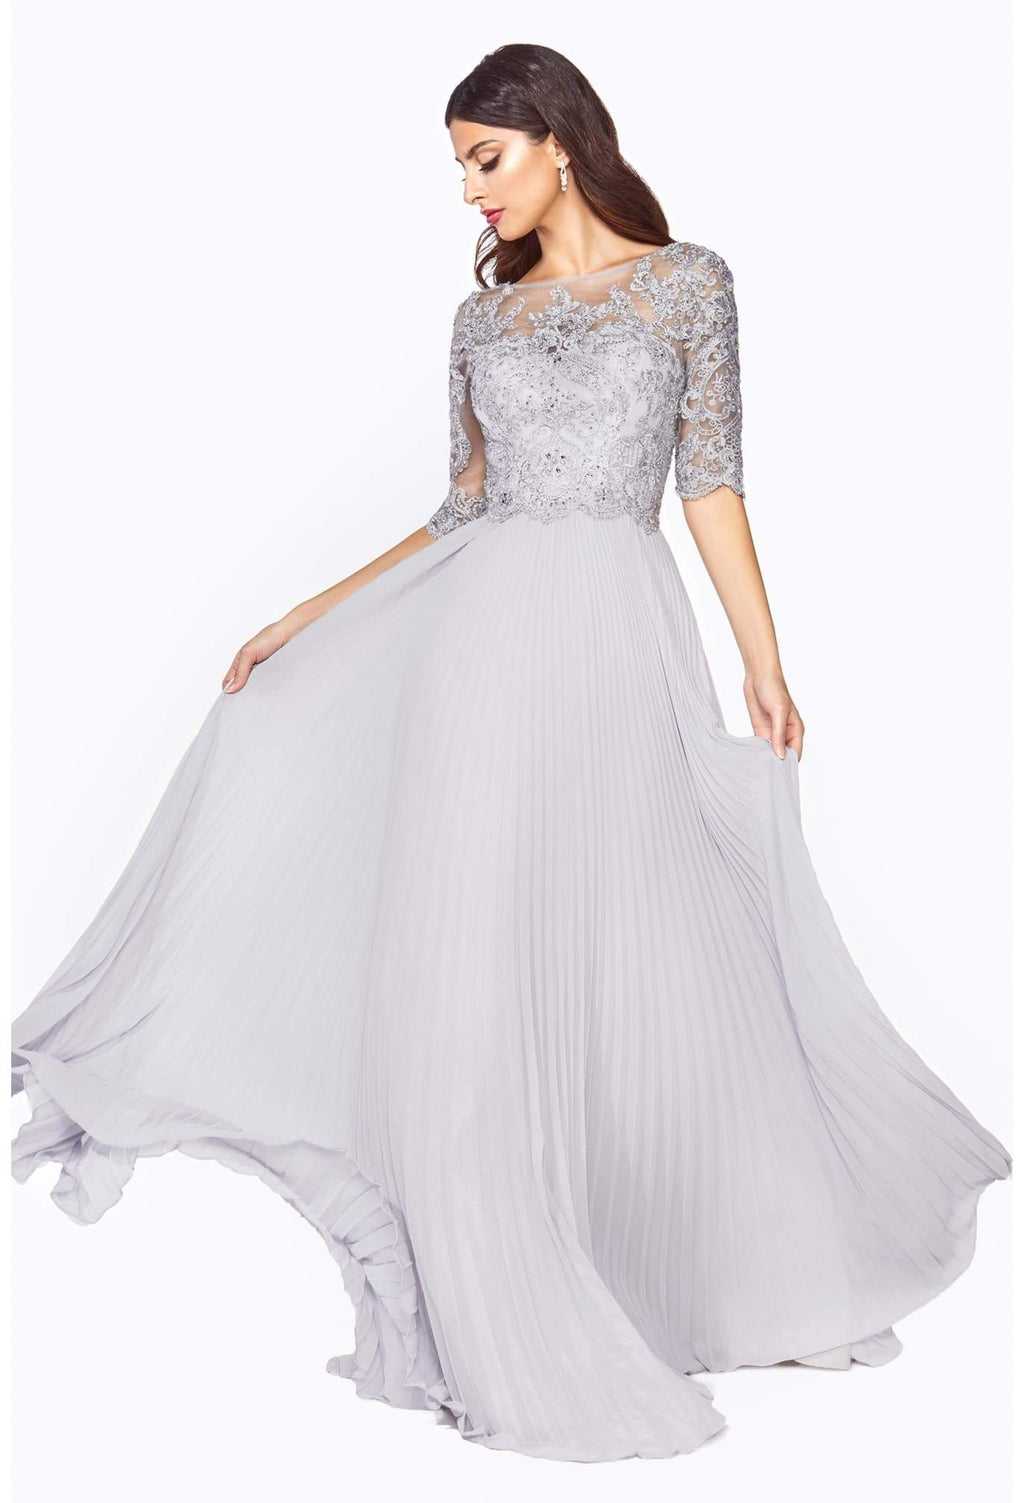 A-line dress with pleated chiffon skirt and lace three-quarter sleeve bodice - KC Haute Couture Wedding Dress